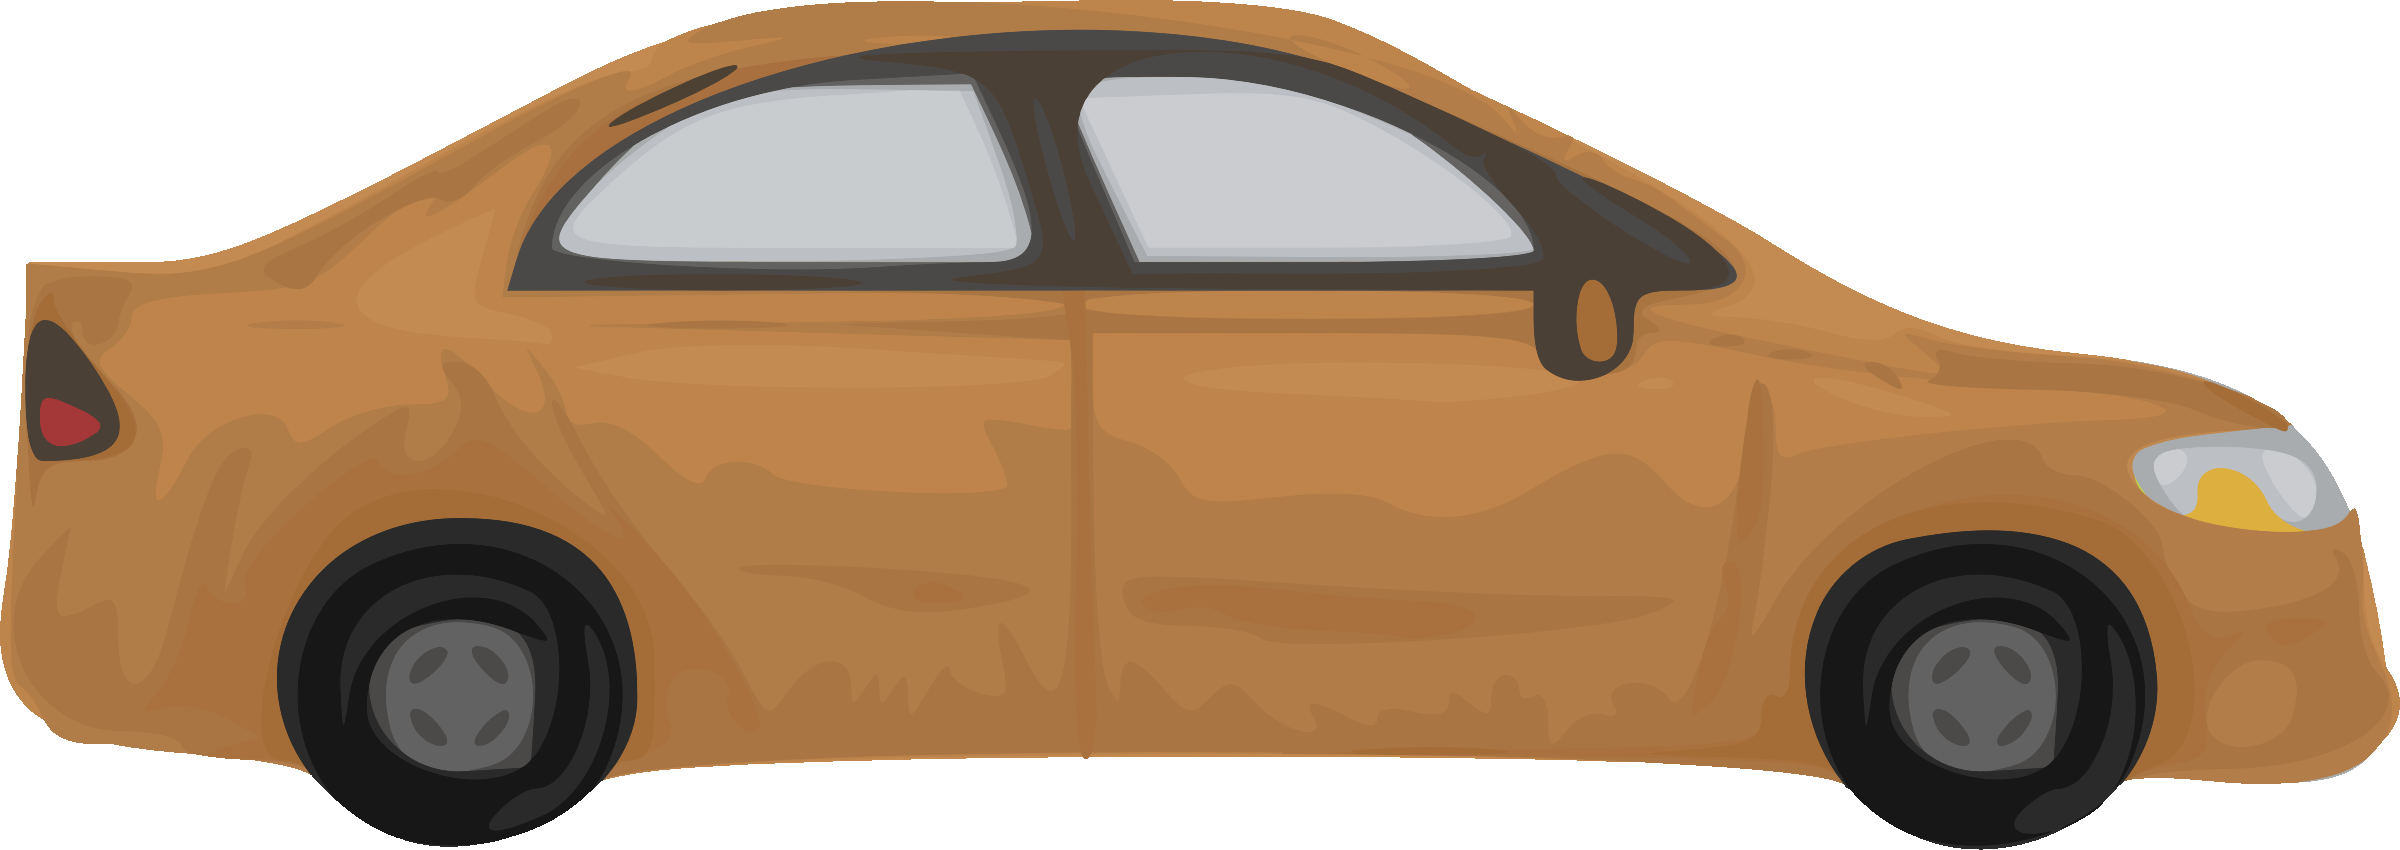 Brown car clipart png freeuse library Clipart - Rough car (brown) png freeuse library